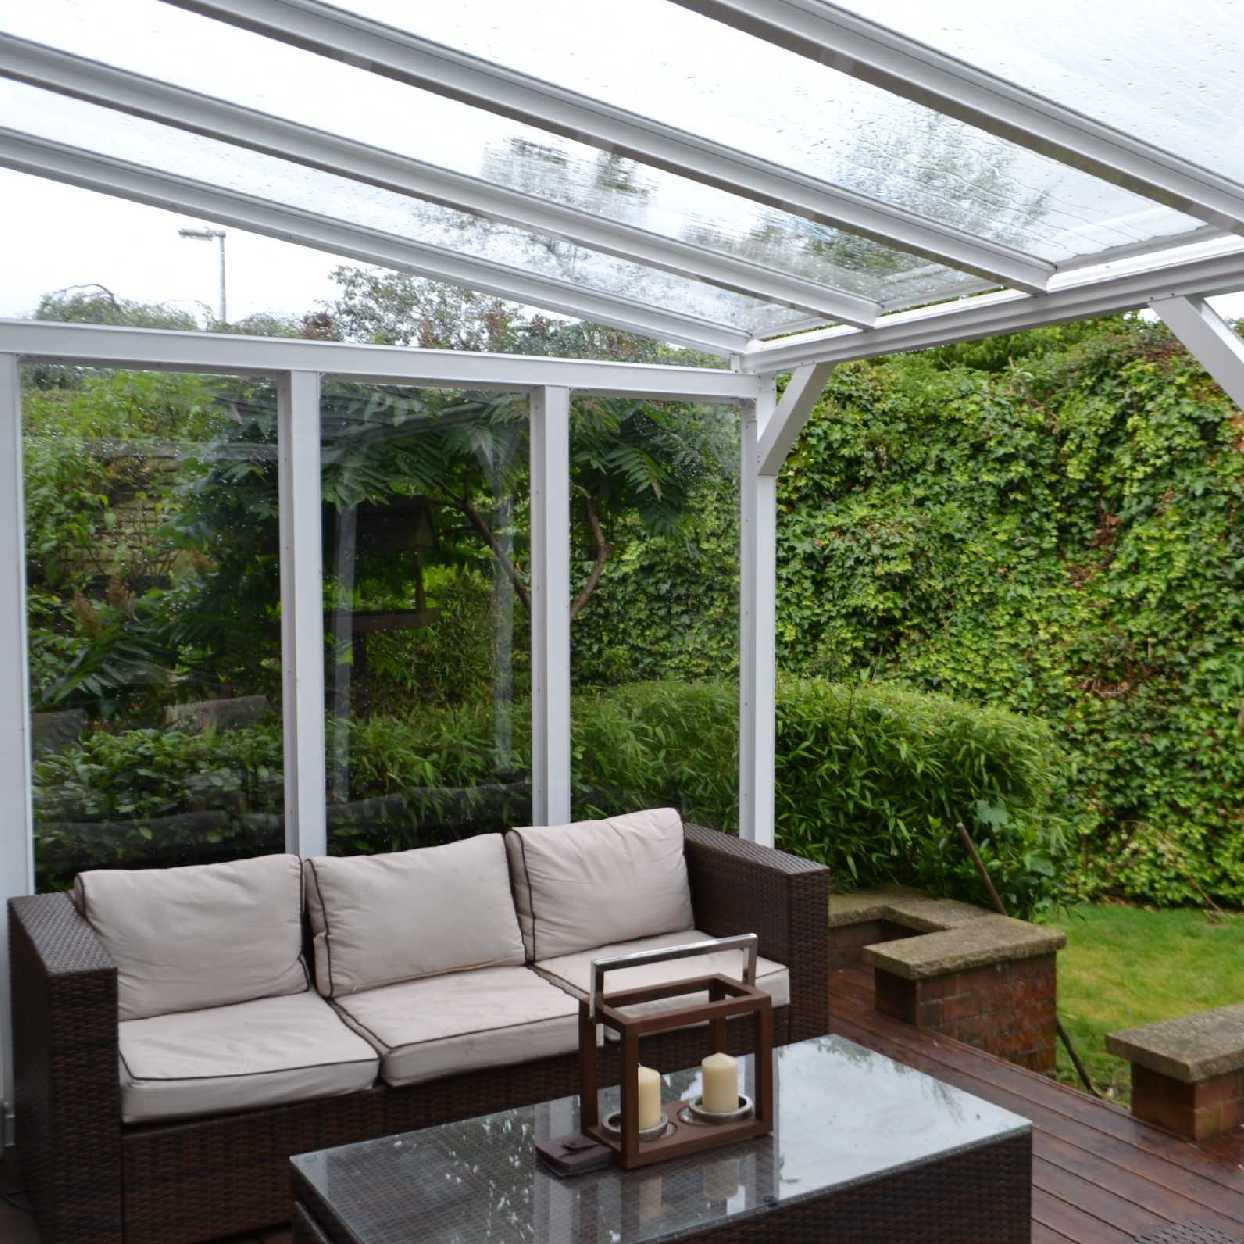 Great selection of Omega Smart White Lean-To Canopy with 16mm Polycarbonate Glazing - 3.5m (W) x 3.5m (P), (3) Supporting Posts